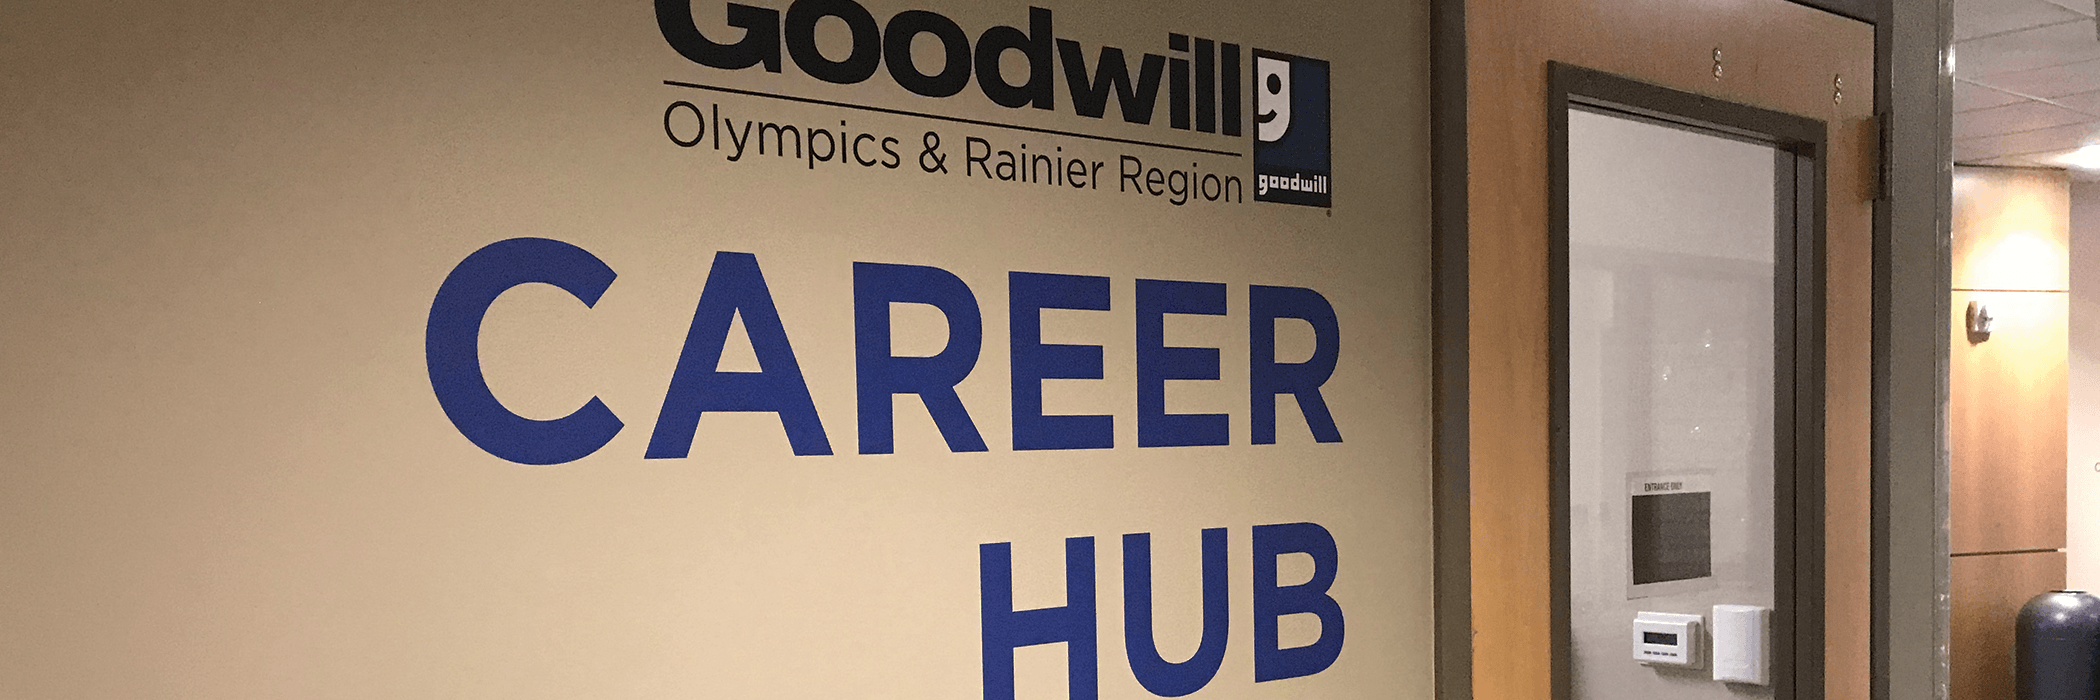 Goodwill Career Hub